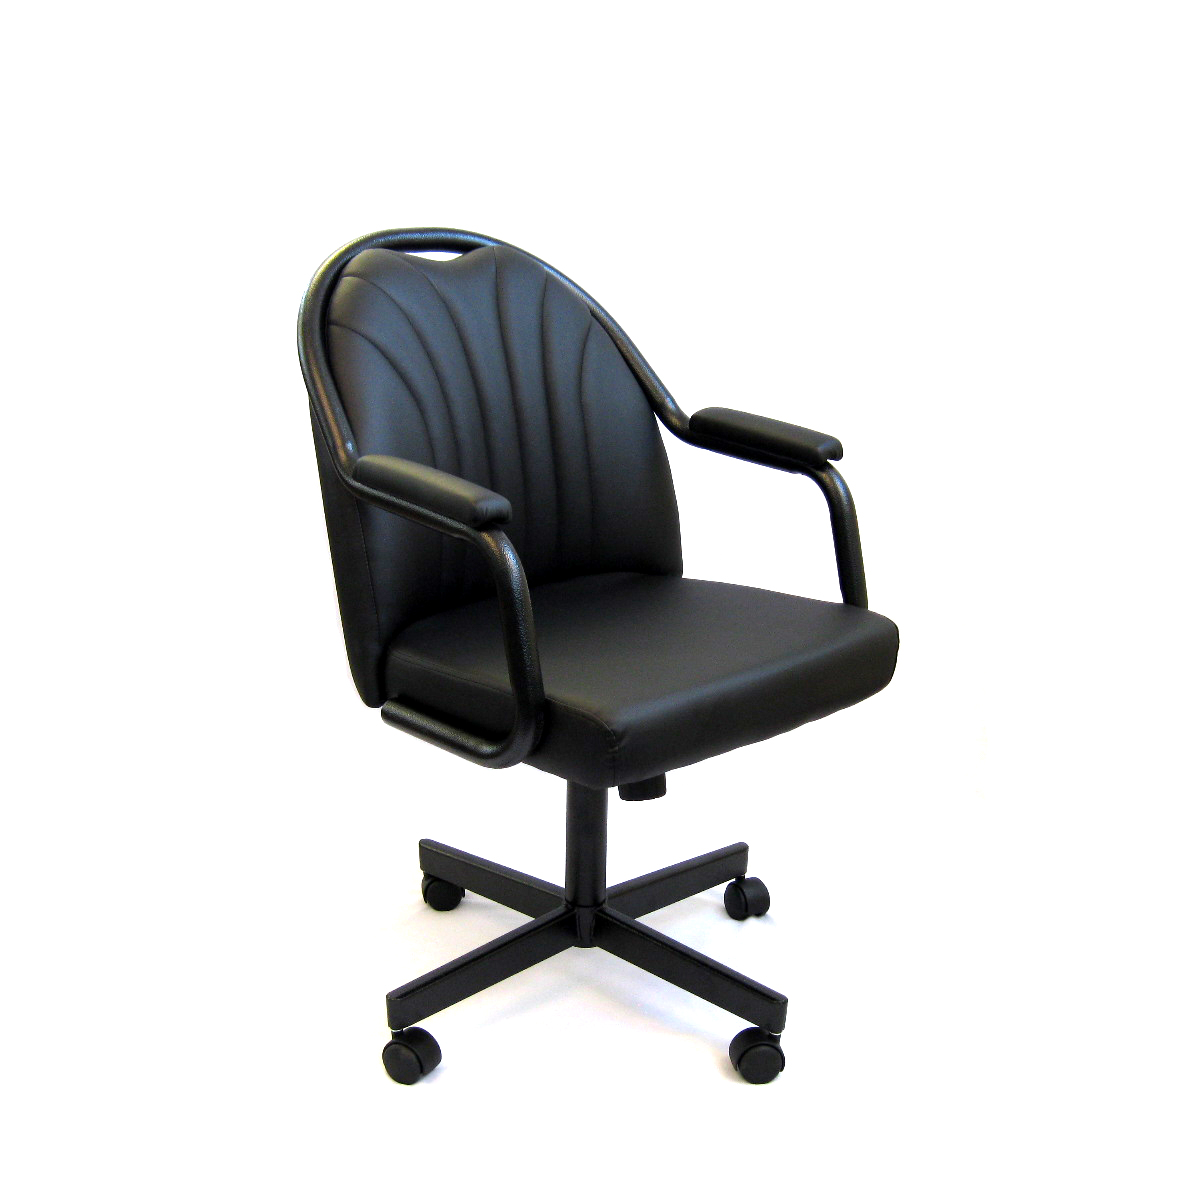 Caster Chairs